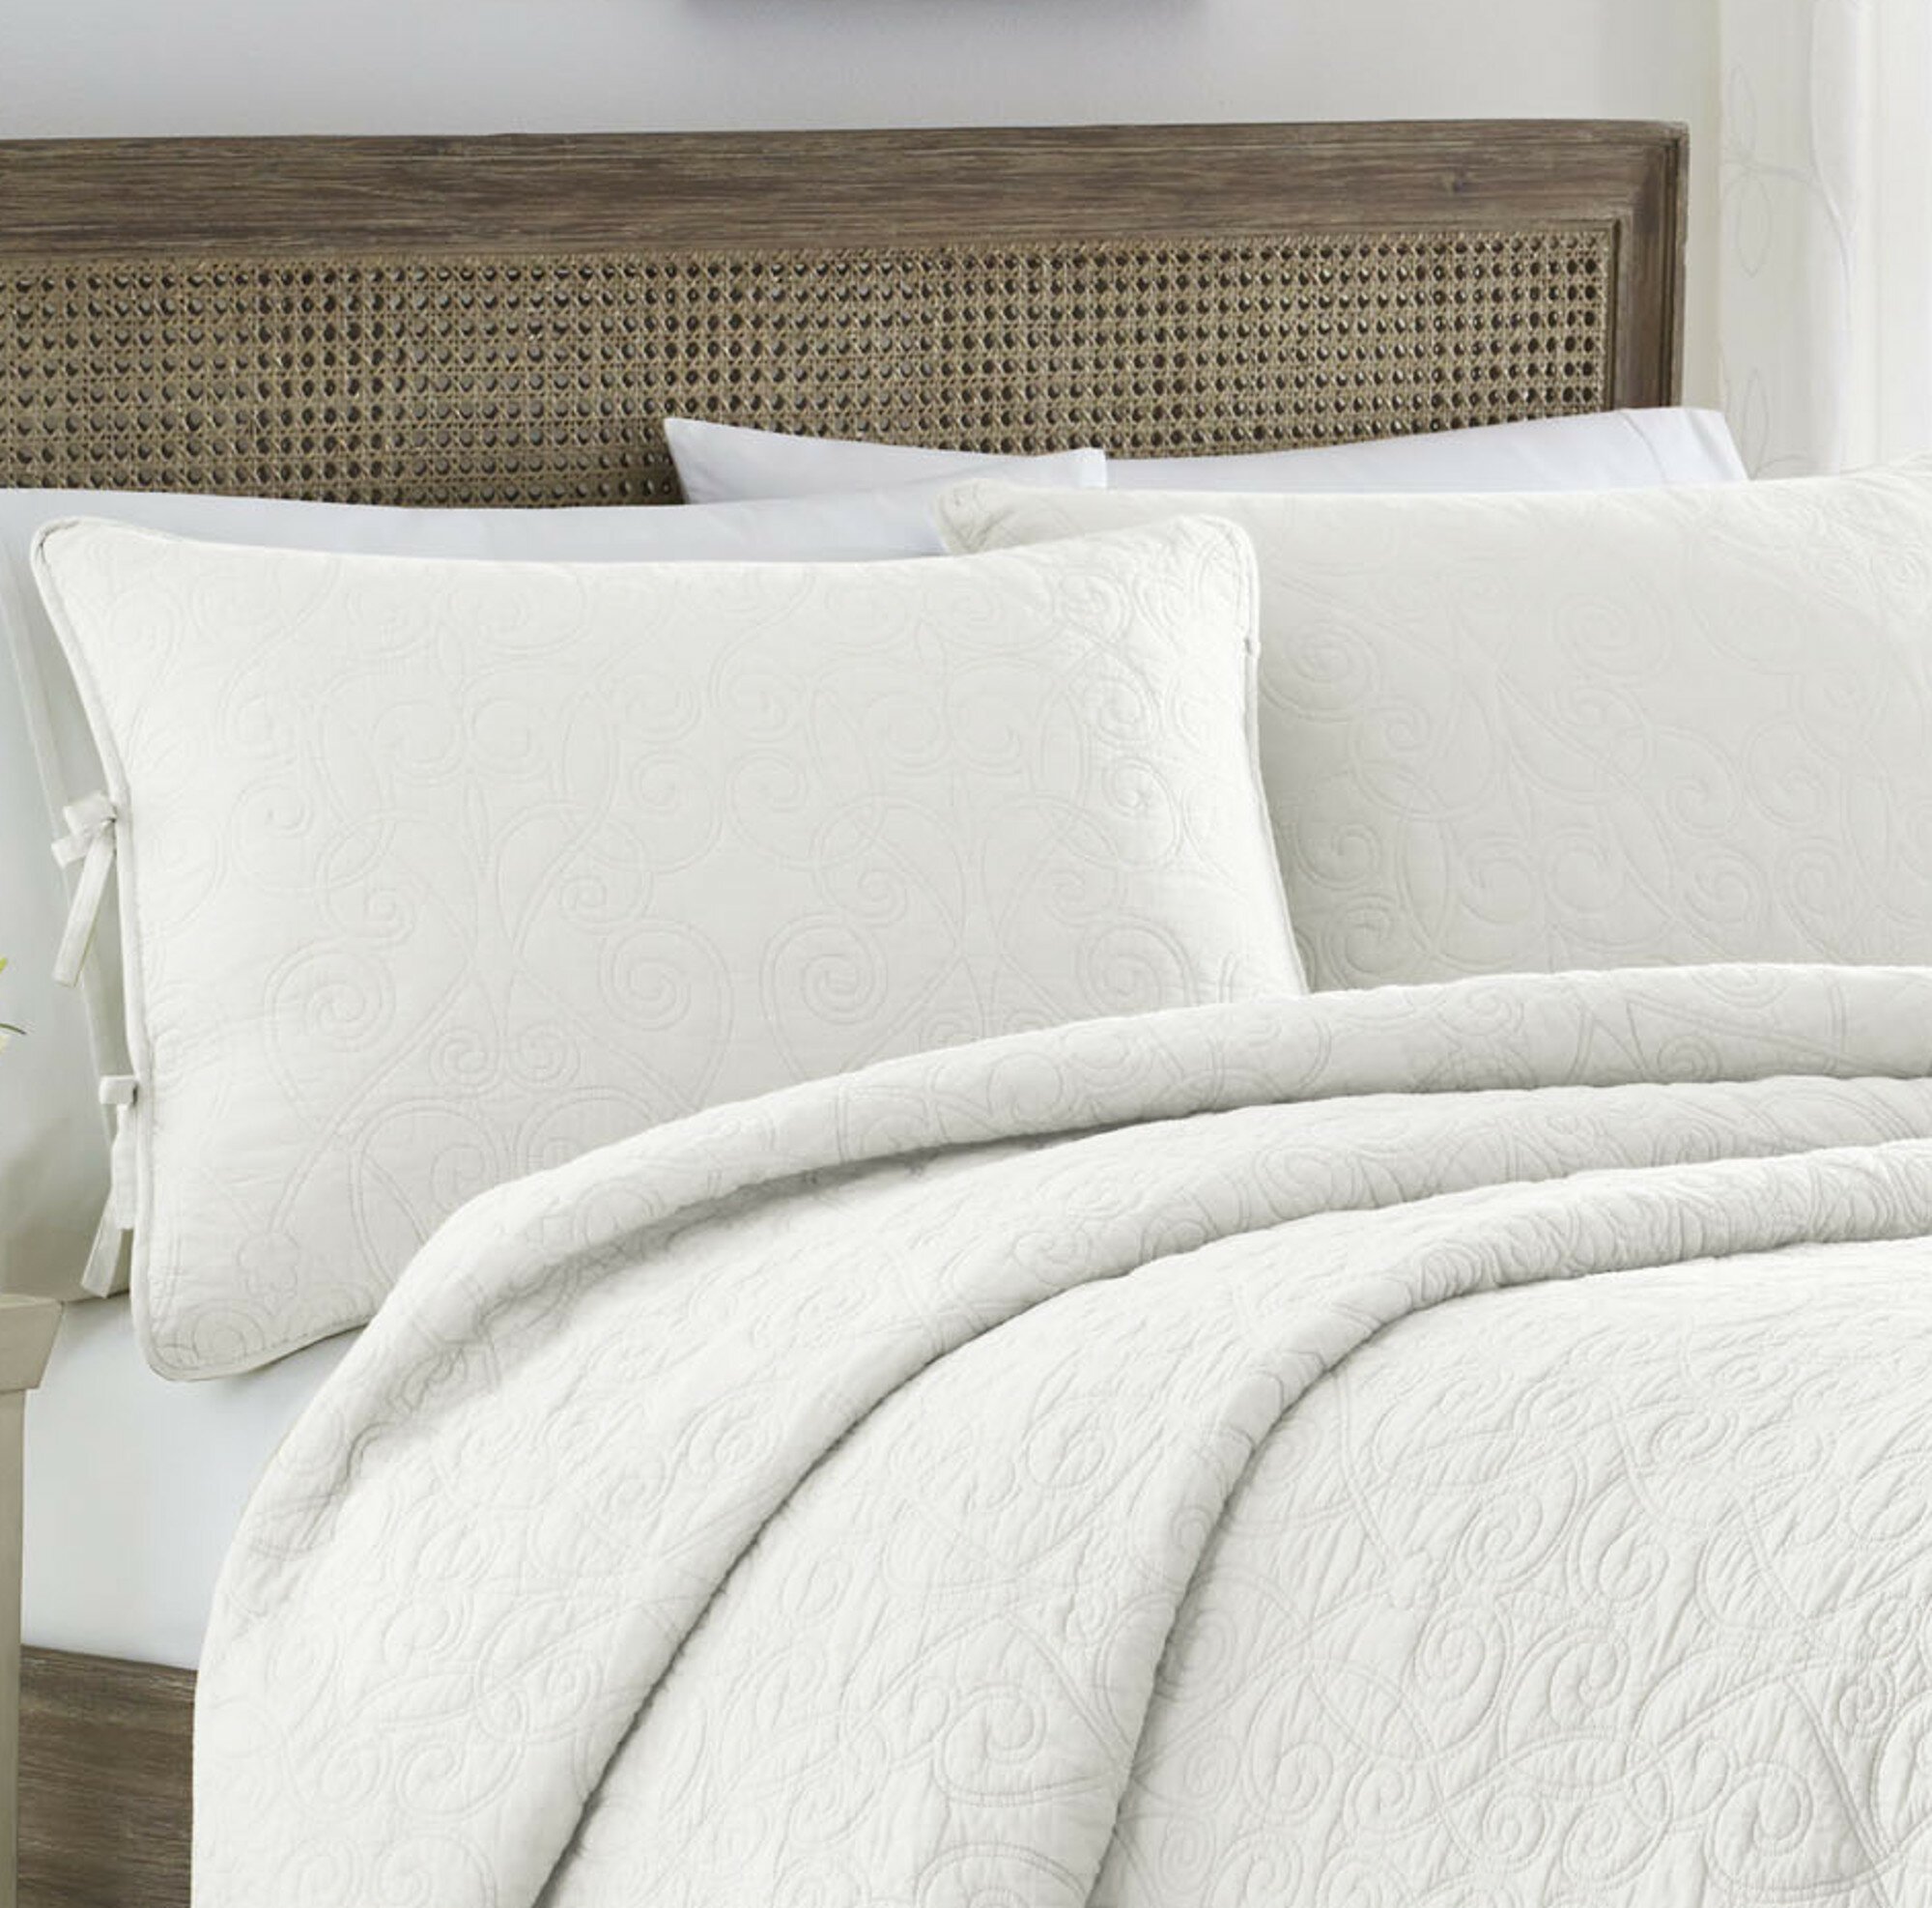 Laura ashley home felicity 100 cotton reversible quilt set by laura laura ashley home felicity 100 cotton reversible quilt set by laura ashley home reviews wayfair gumiabroncs Image collections